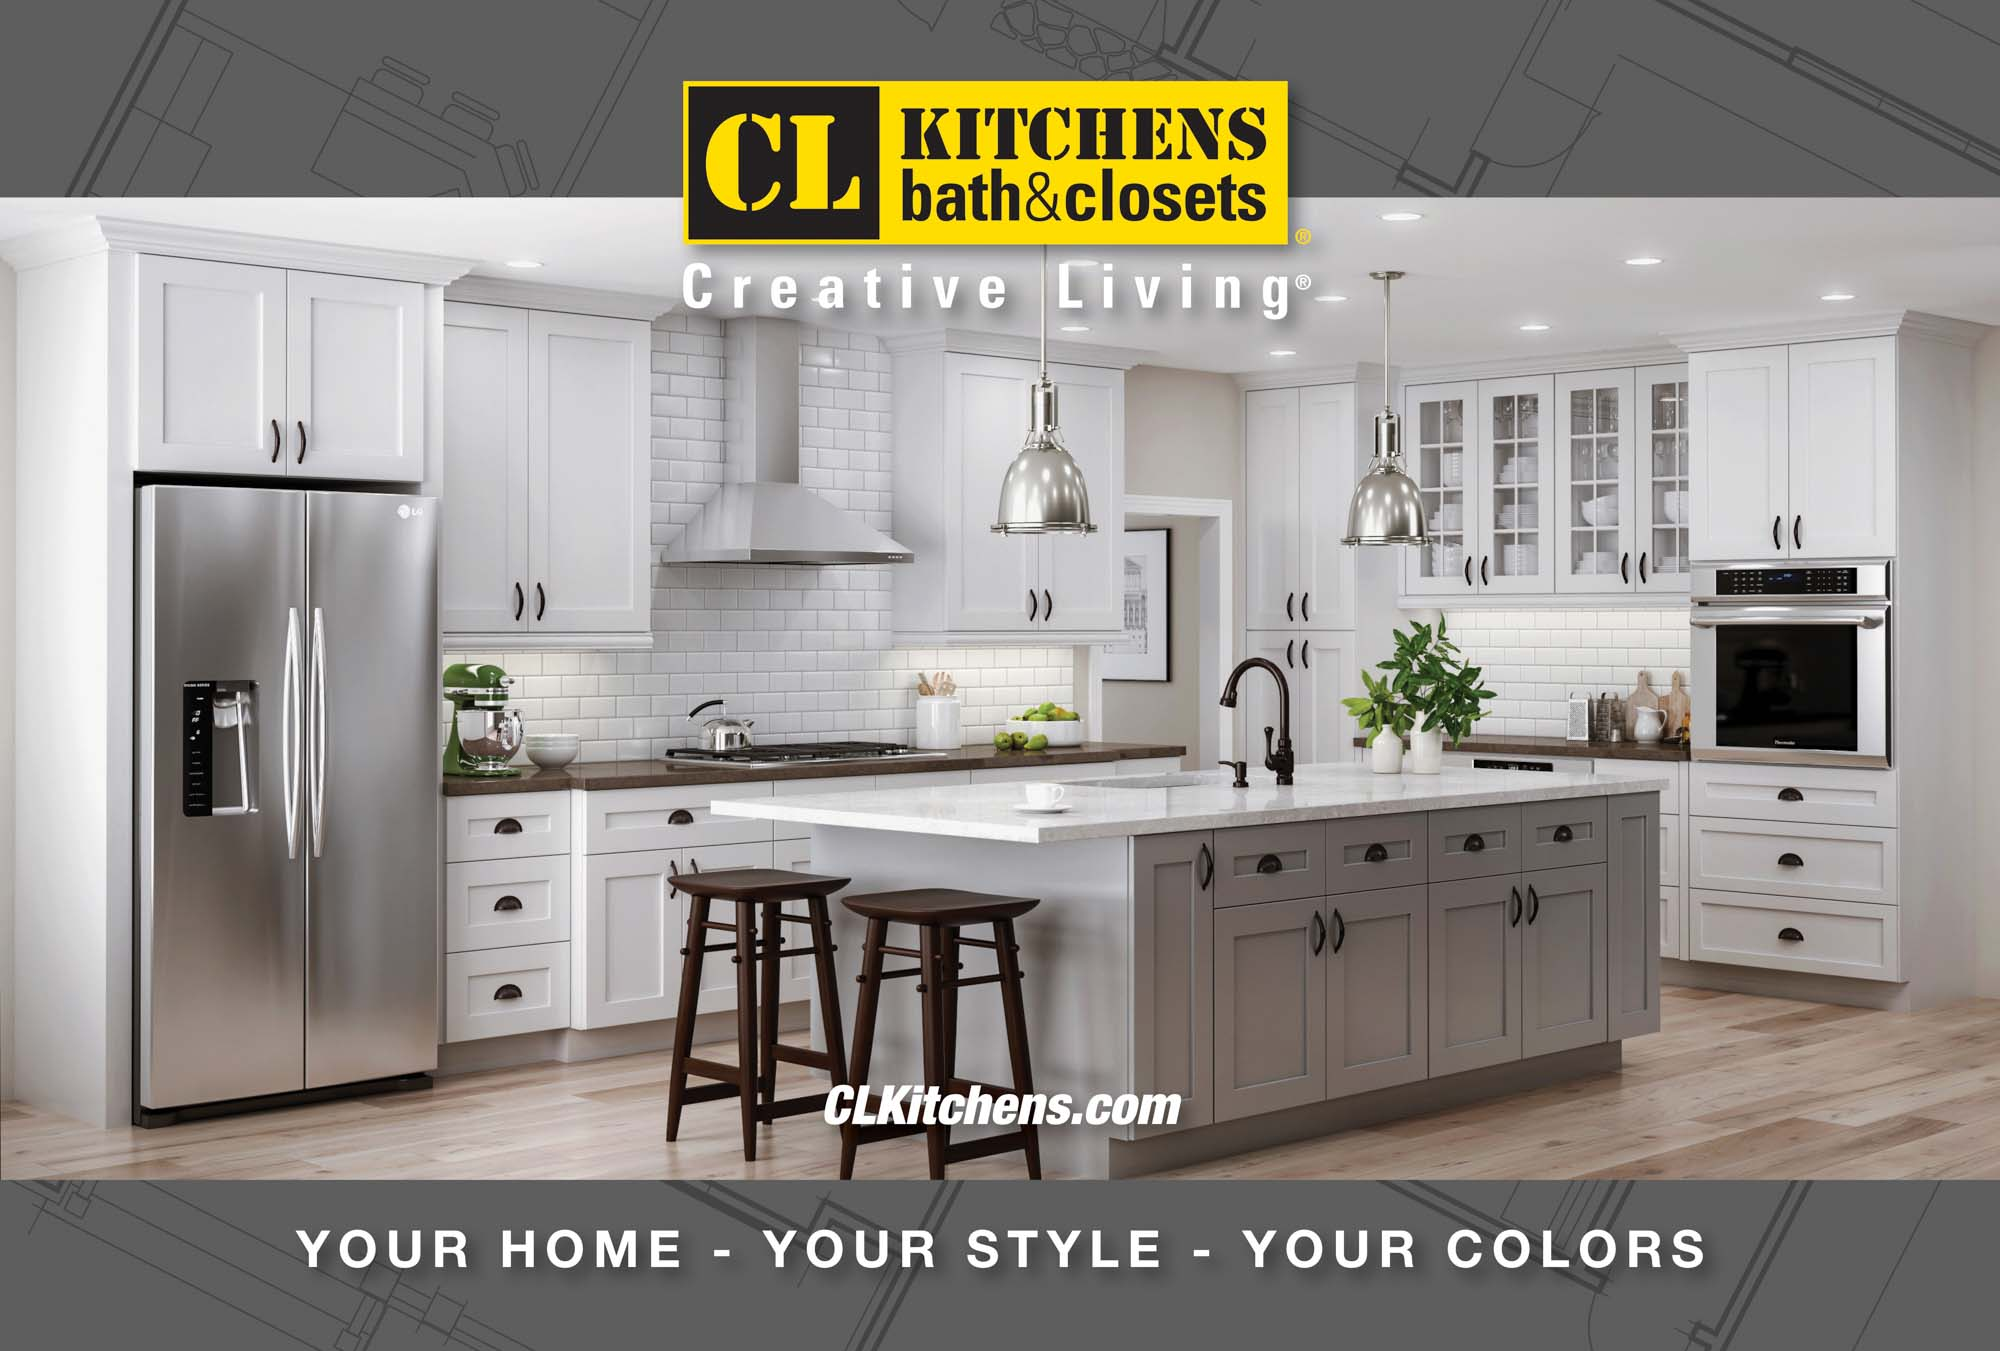 cl-kitchens-1-1